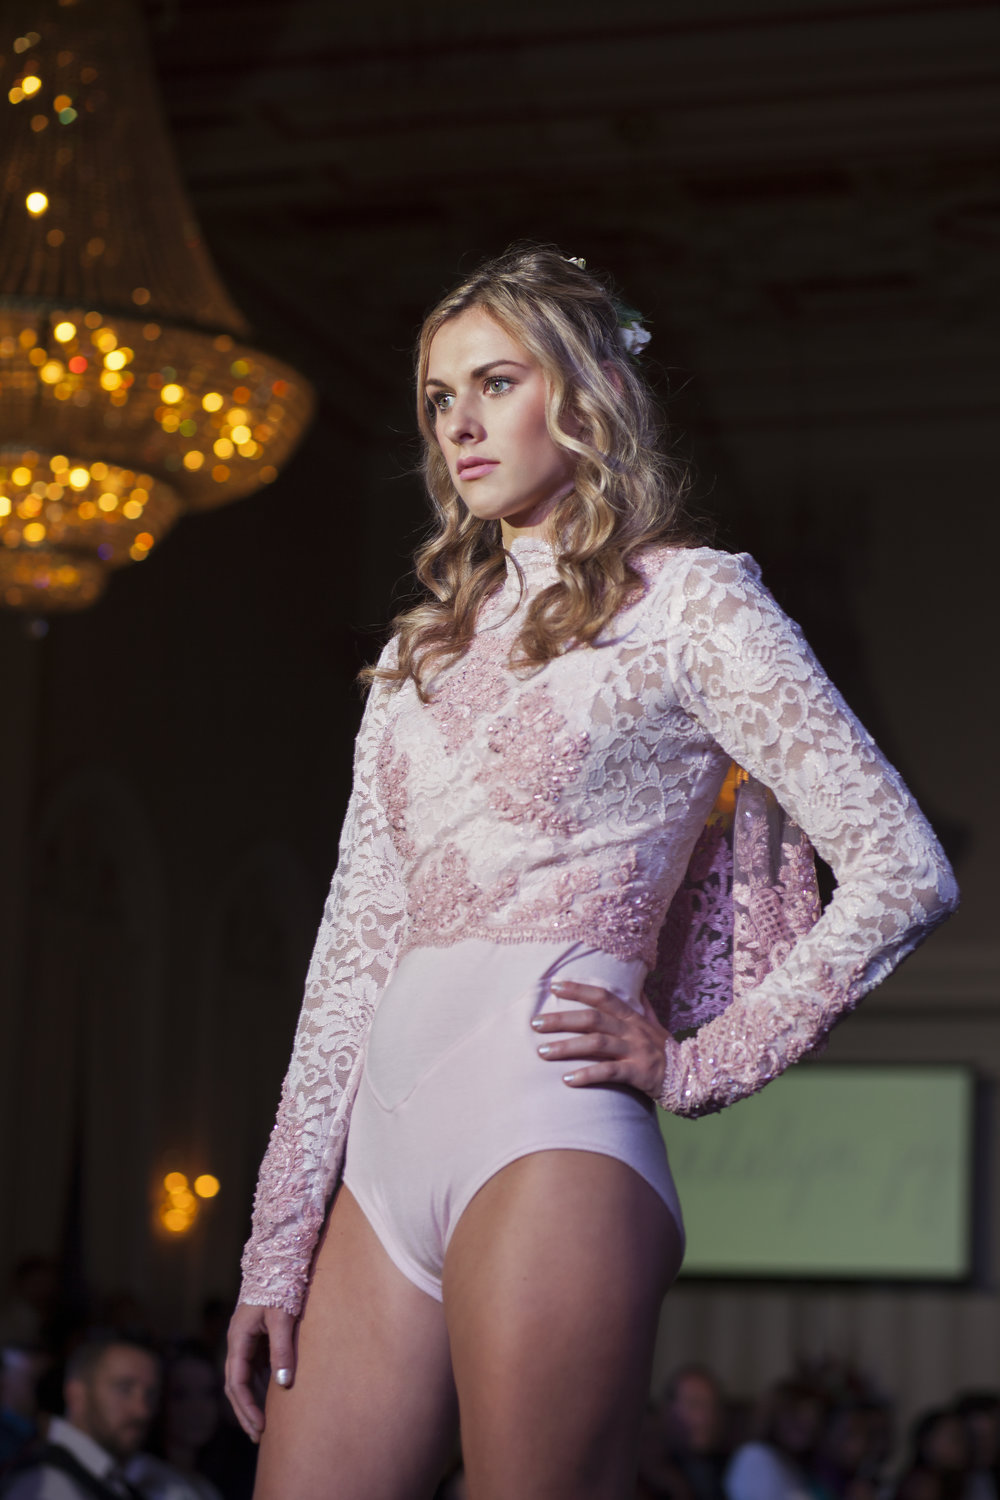 Holland Huron strikes a fierce pose on the runway wearing a blush pink leotard and embellished crop top with a capelet.